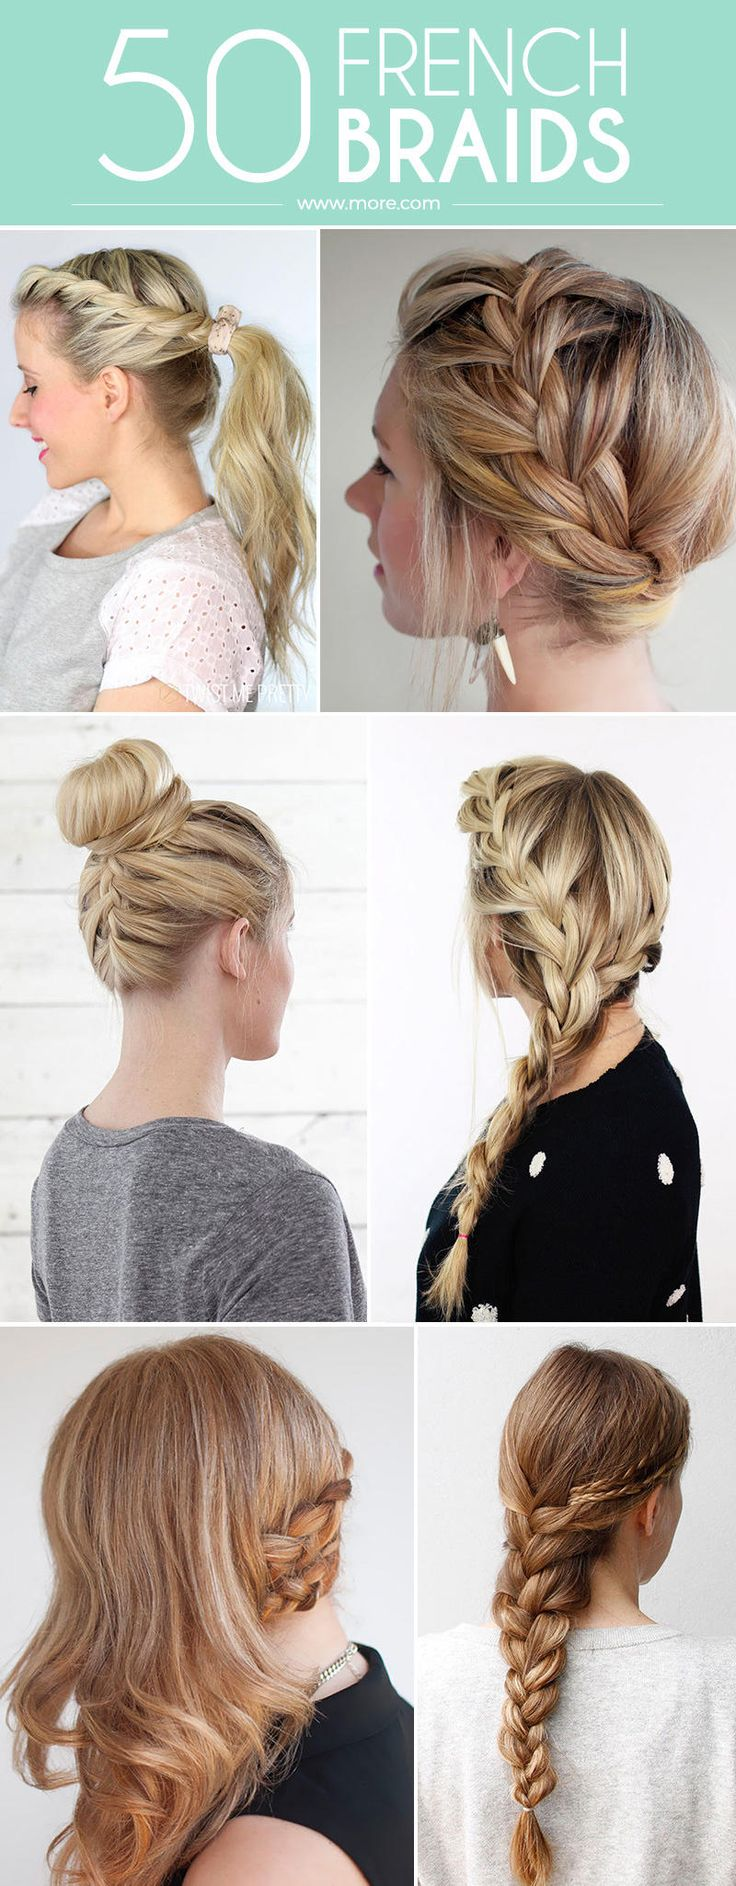 Braids never go out of style. They're easy. They're versatile. They're elegant. They're casual.